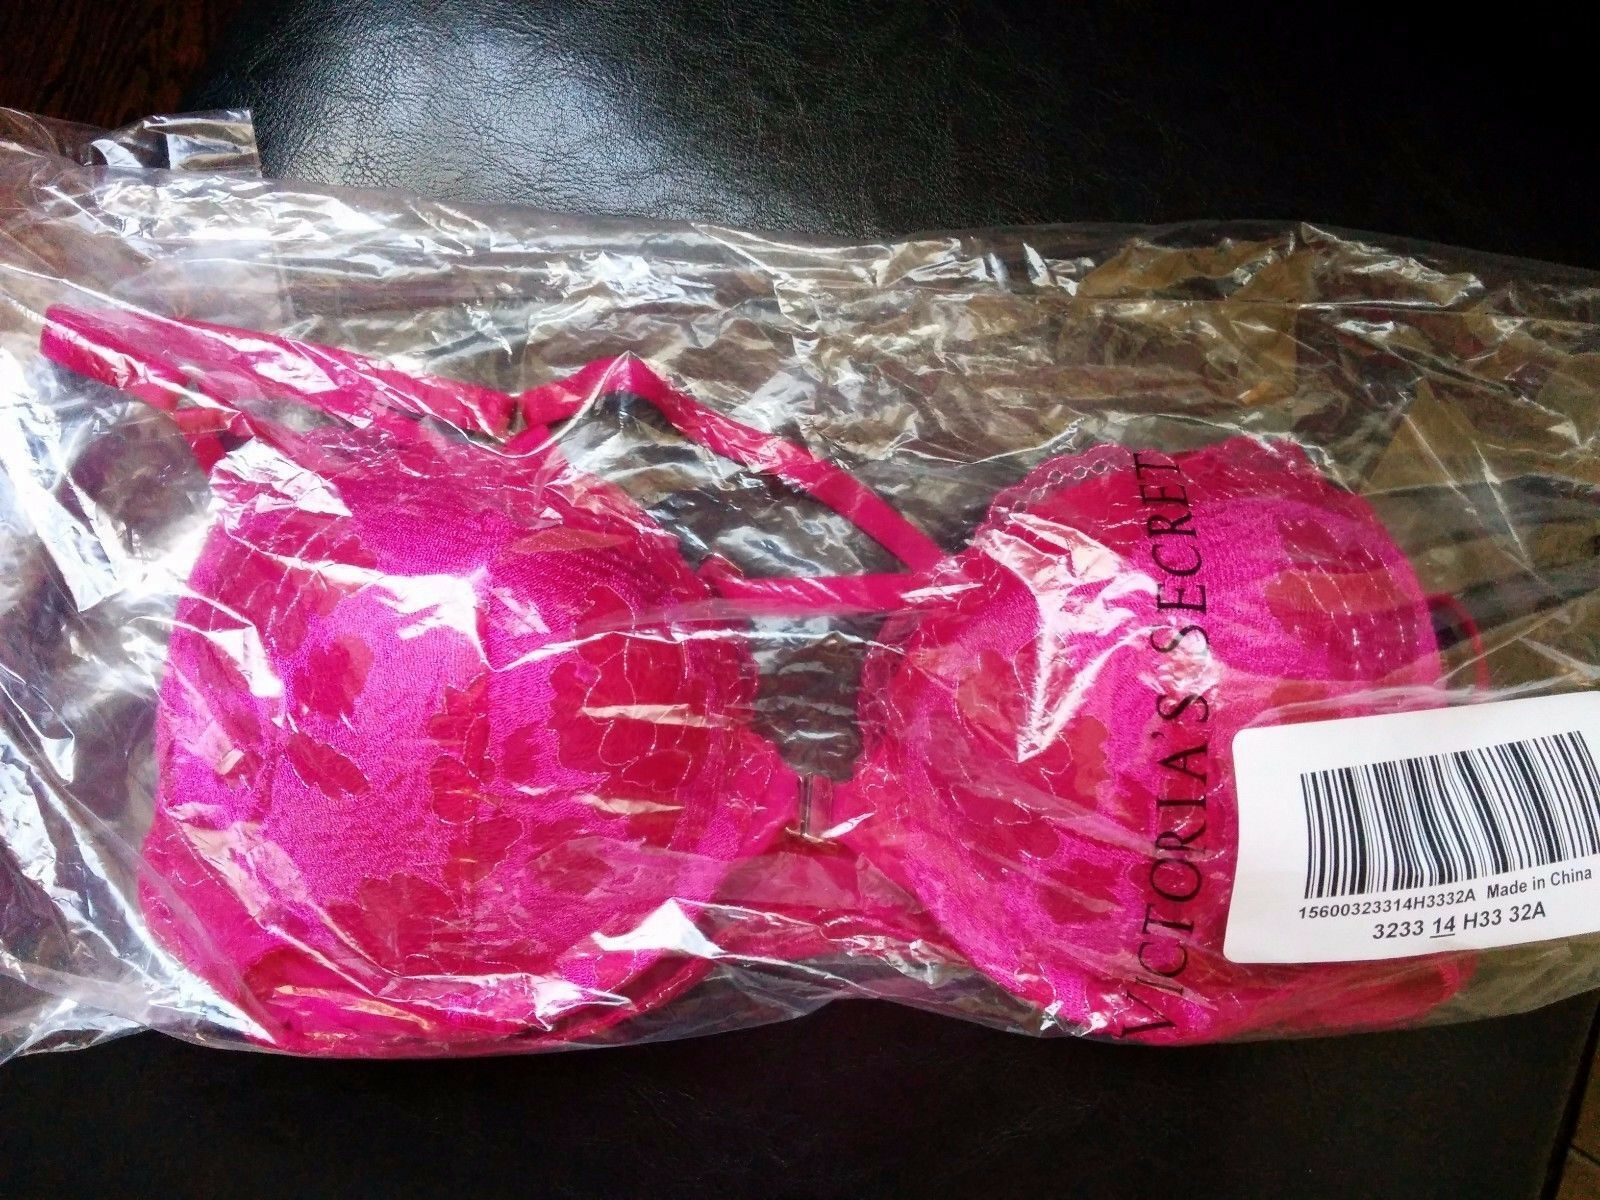 62 Victoria's Secret Bombshell ADD-2-CUPS PUSH-UP BRA IN LACE34Alimited ed